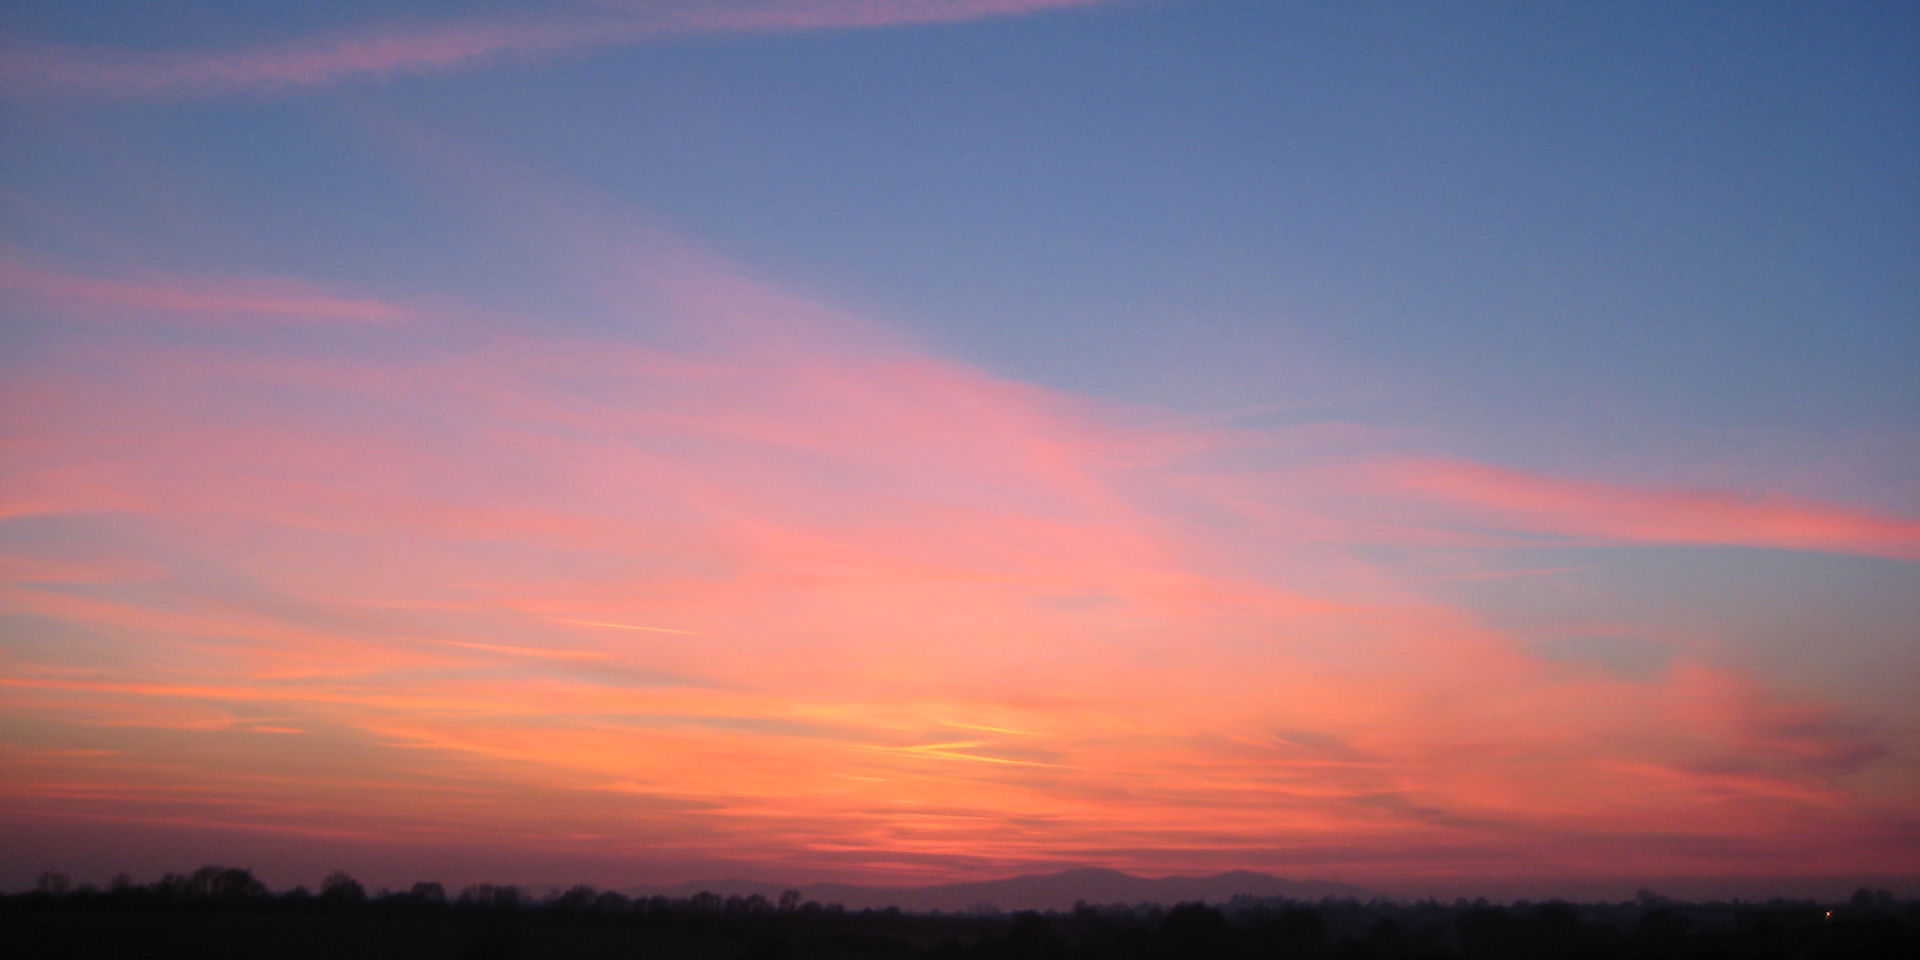 Sunset over the Malverns